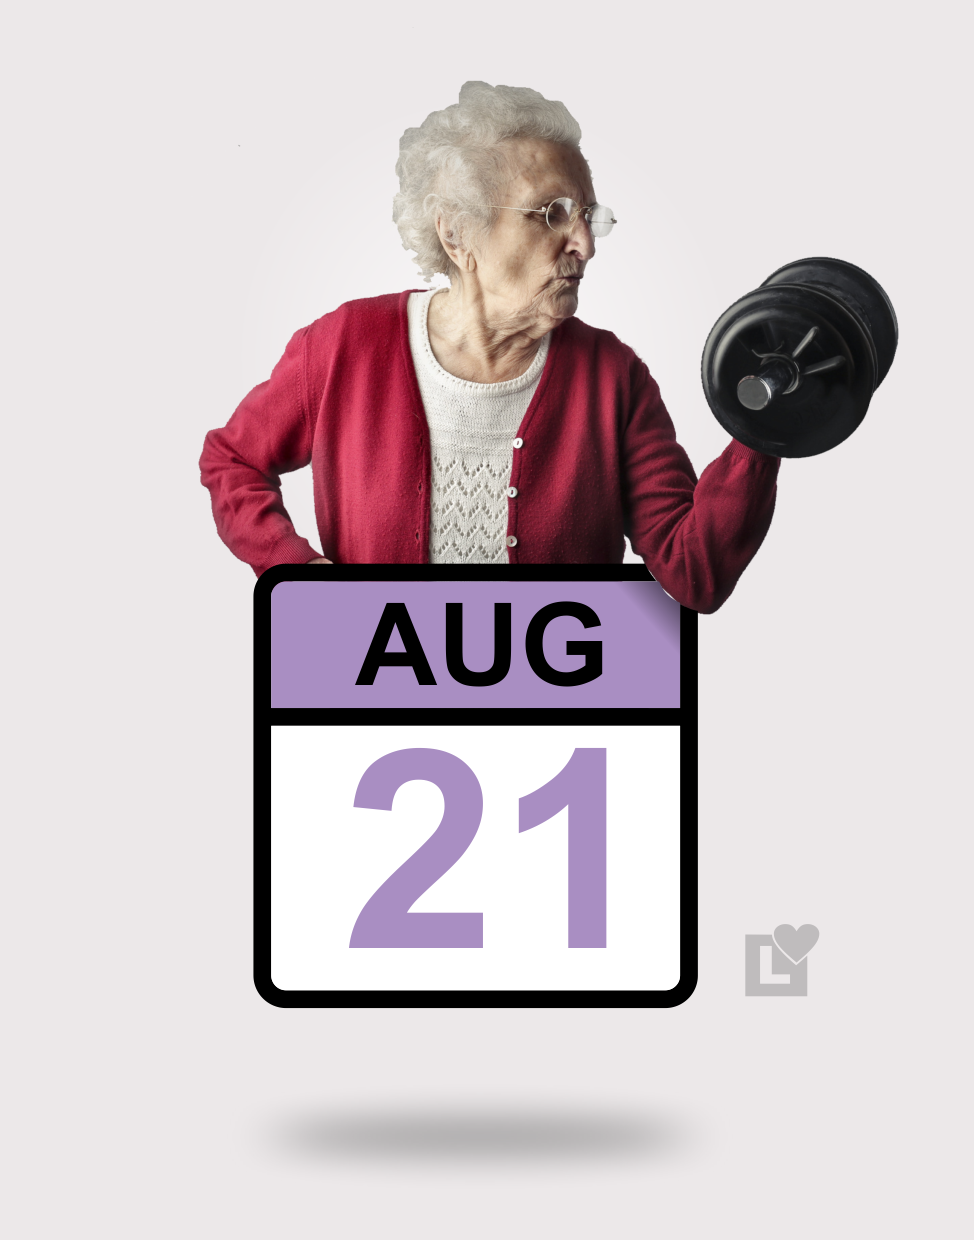 Senior Citizens Day - Love Right Home Care Referral Agency